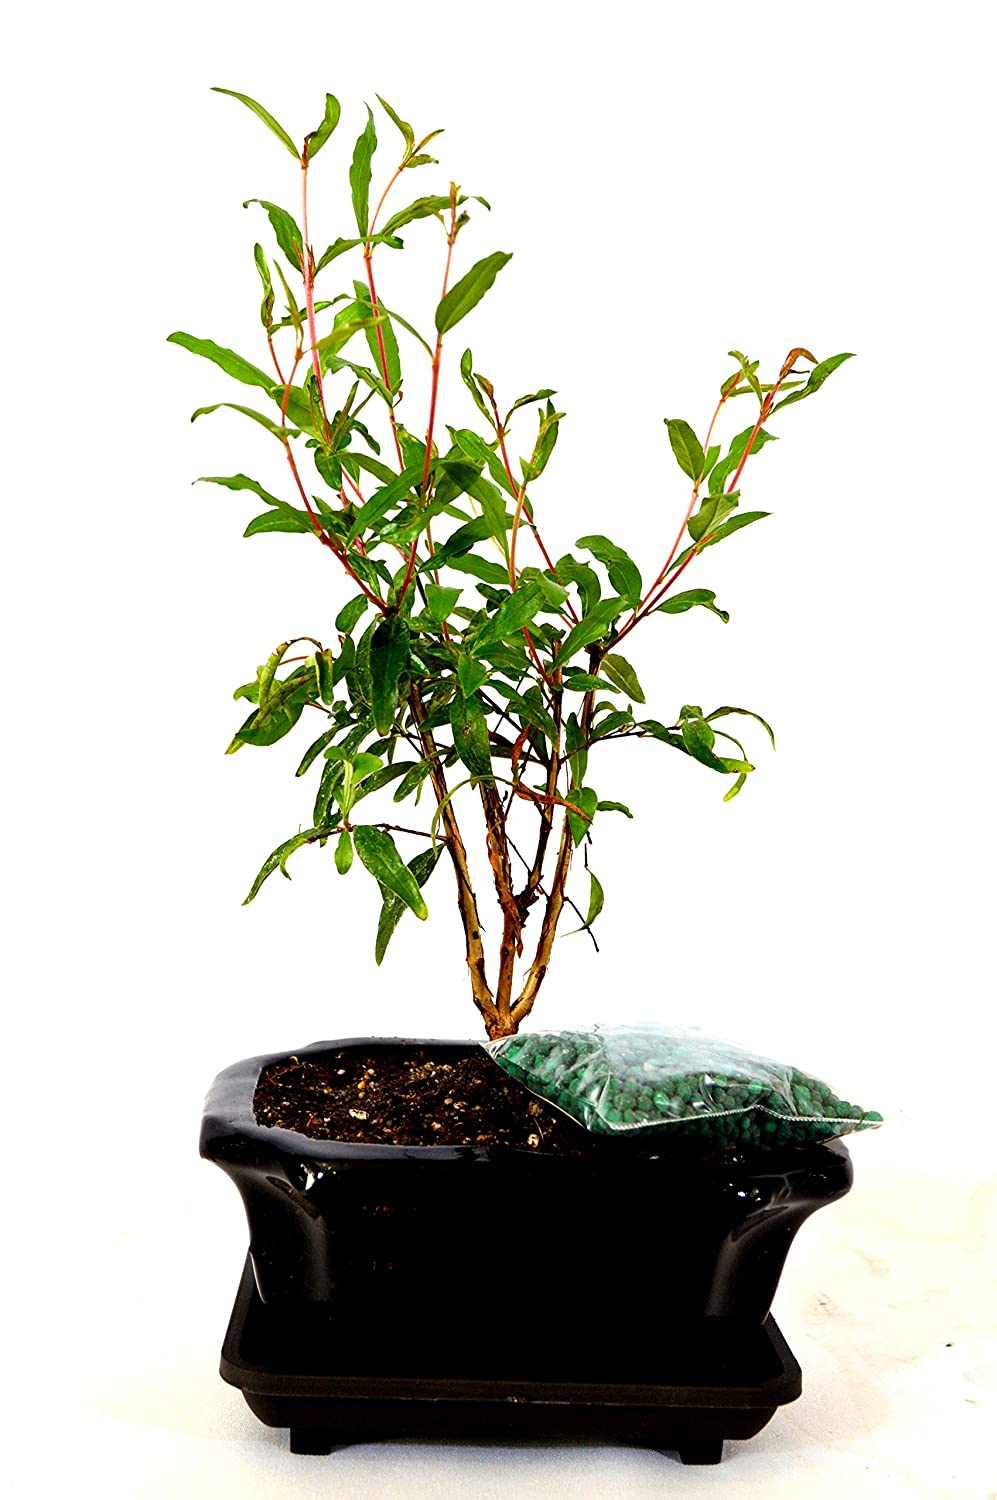 9greenbox Dwarf Pomegranate Mame Bonsai With Ceramic Pot Live Plant Ornament Decor For Home Kitchen Office Table Desk Attracts Zen Luck Good Fortune Non Gmo Grown In The Usa Grocery Gourmet Food Amazon Com